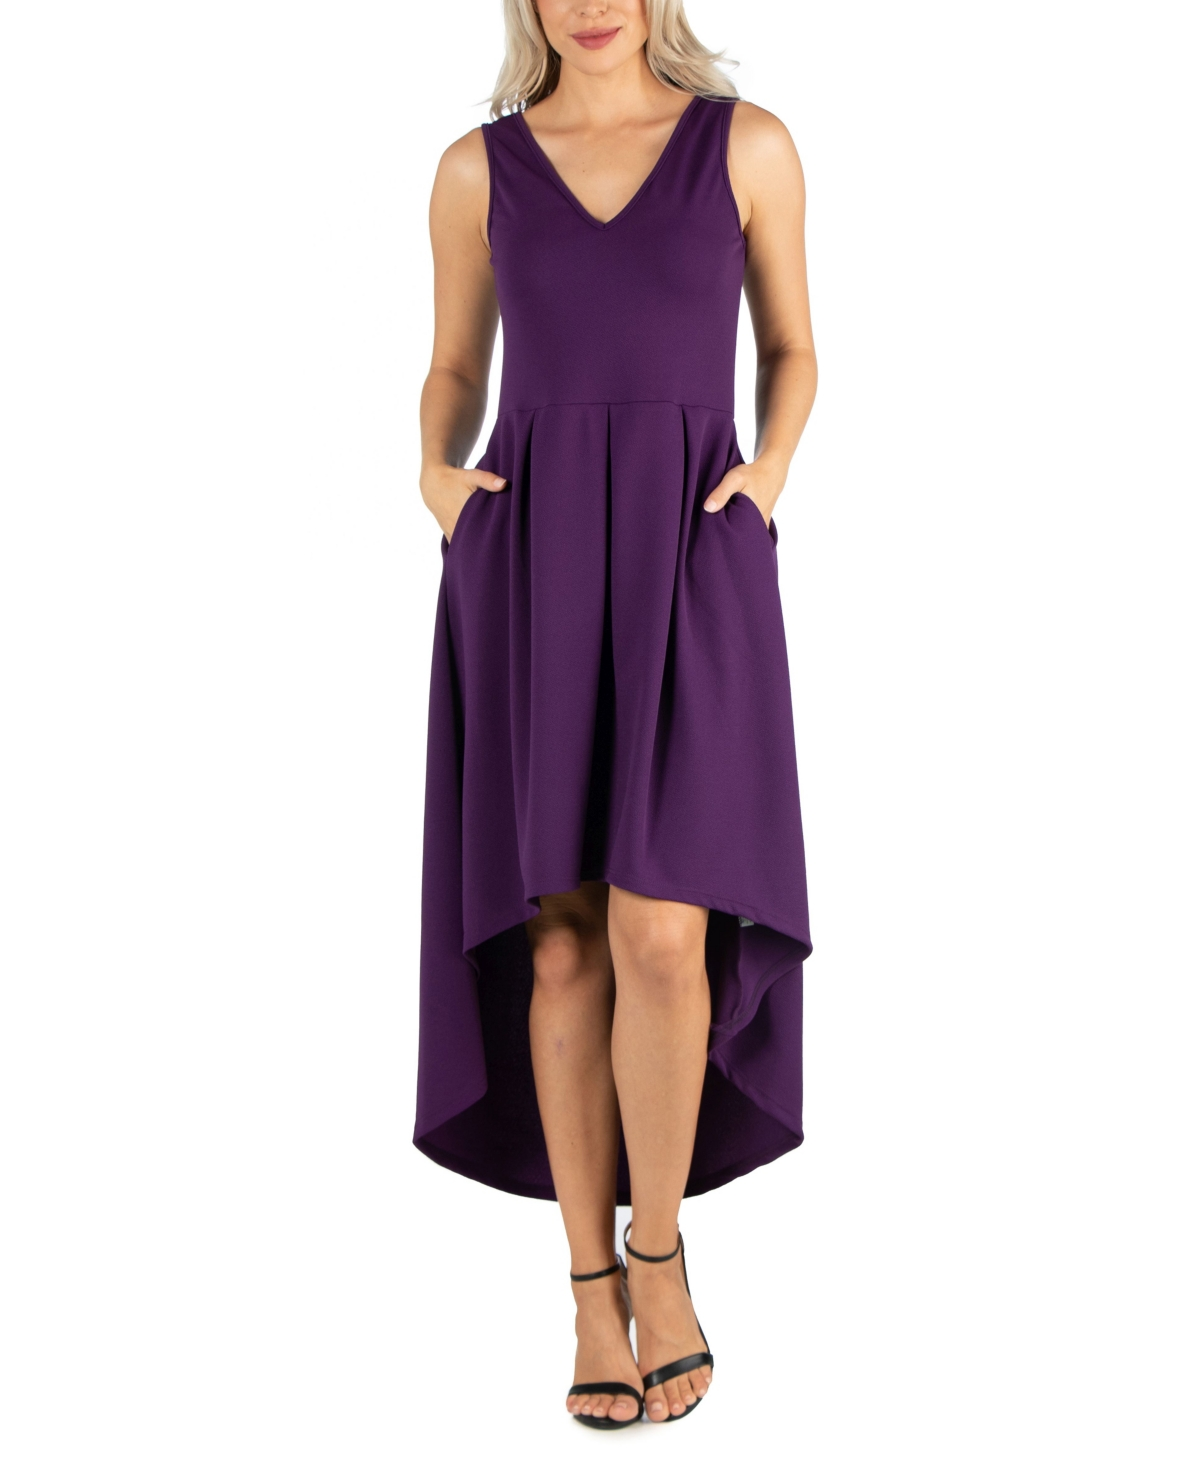 Womens Sleeveless Fit and Flare High Low Dress